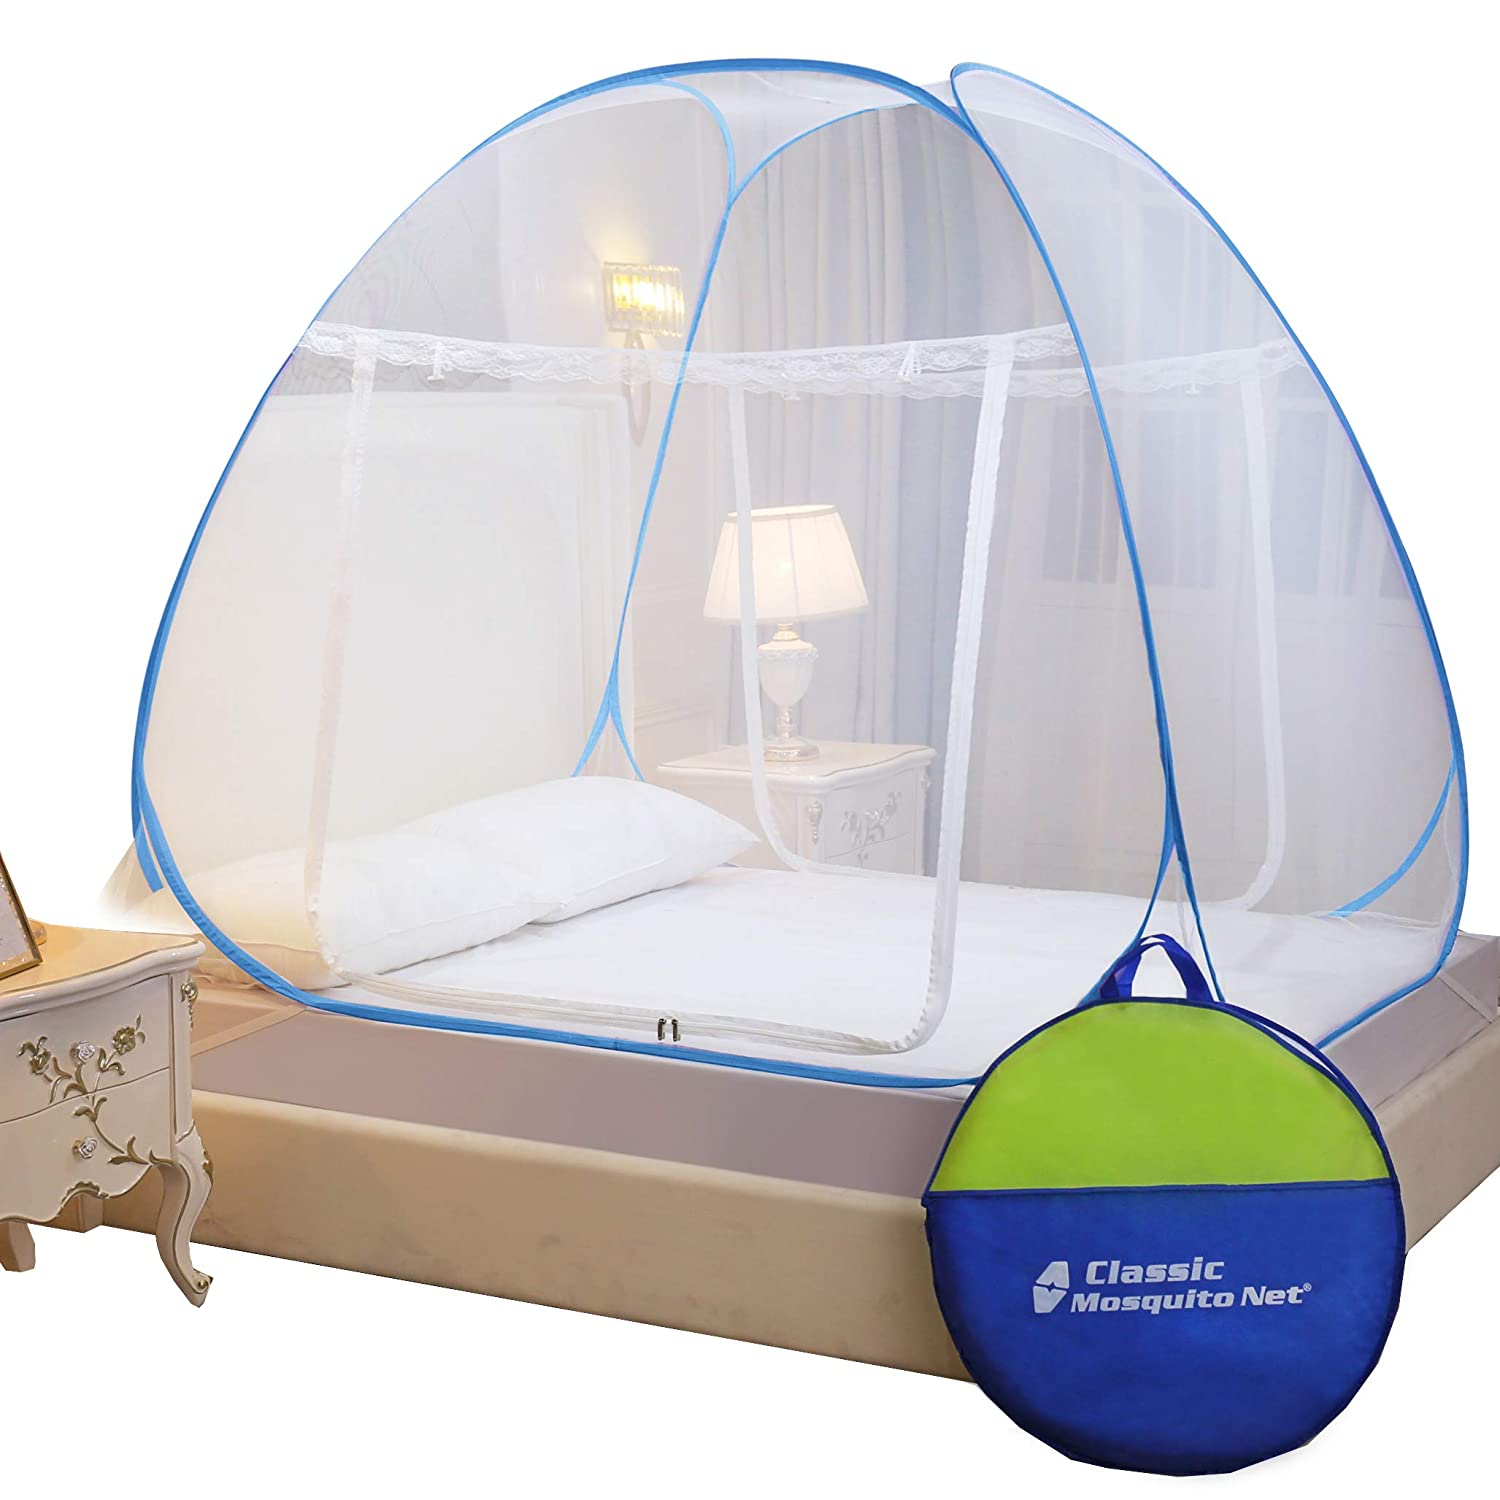 Classic Double Bed King Size Best Mosquito Net